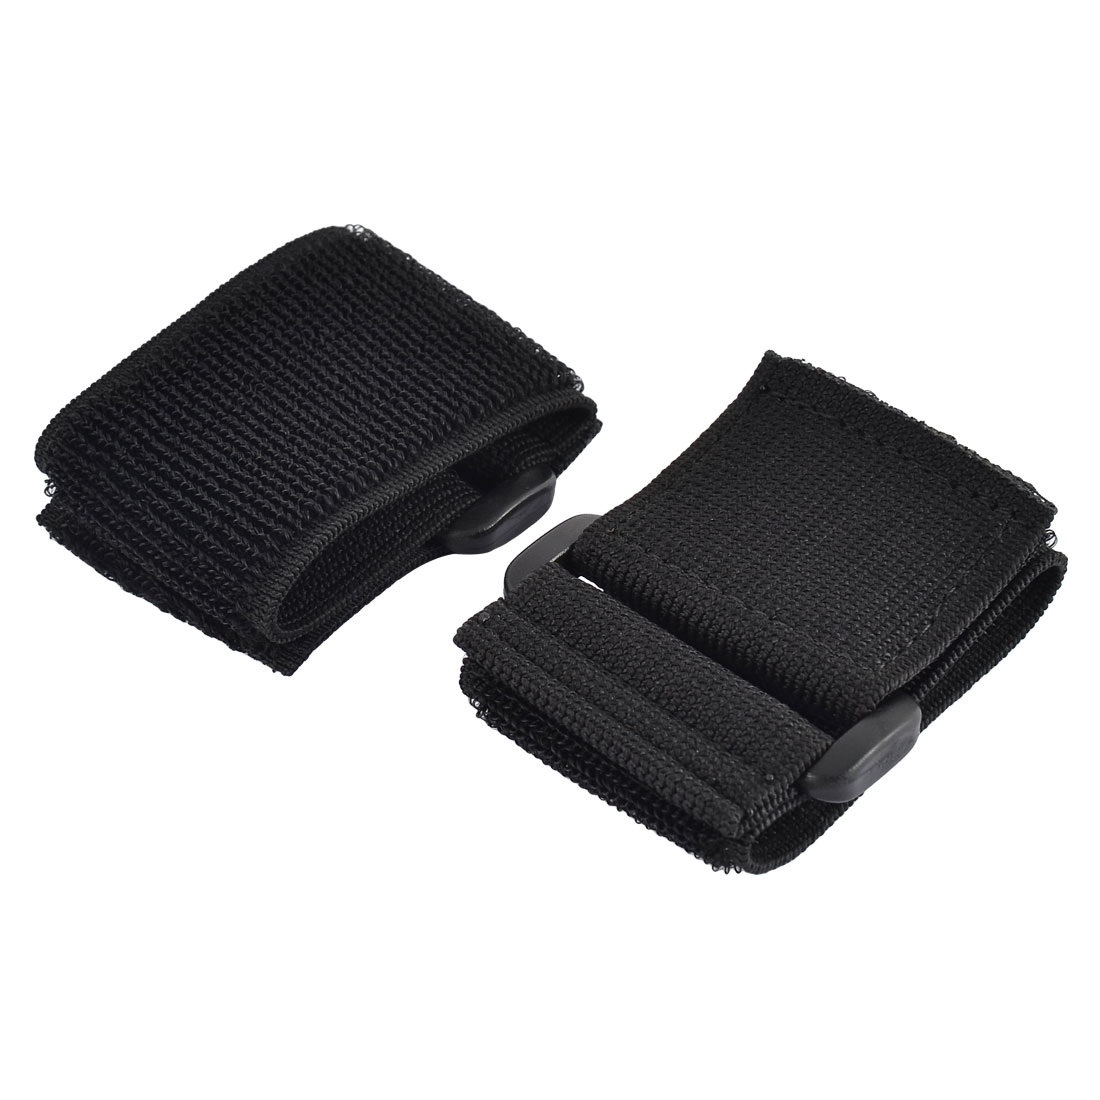 Outdoor Sports Nylon Elastic Backpack Hook Loop Tie Strap Black 5 x 20cm 2pcs